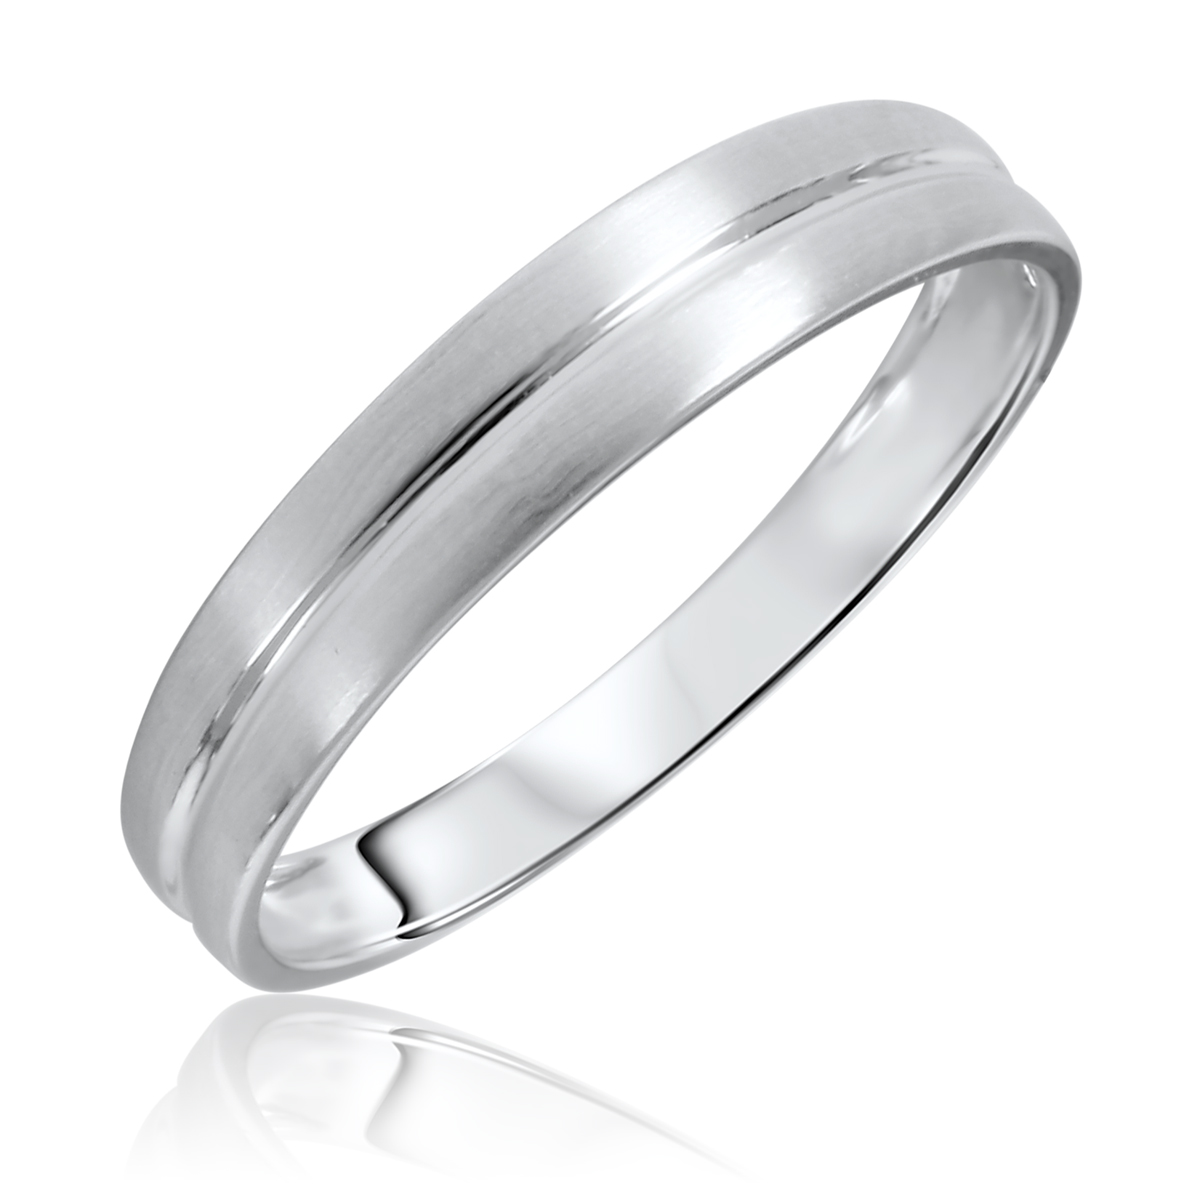 mens wedding ring white gold wedding bands Traditional No Diamond 4 5 millimeter 10K White Gold Traditional Mens Wedding